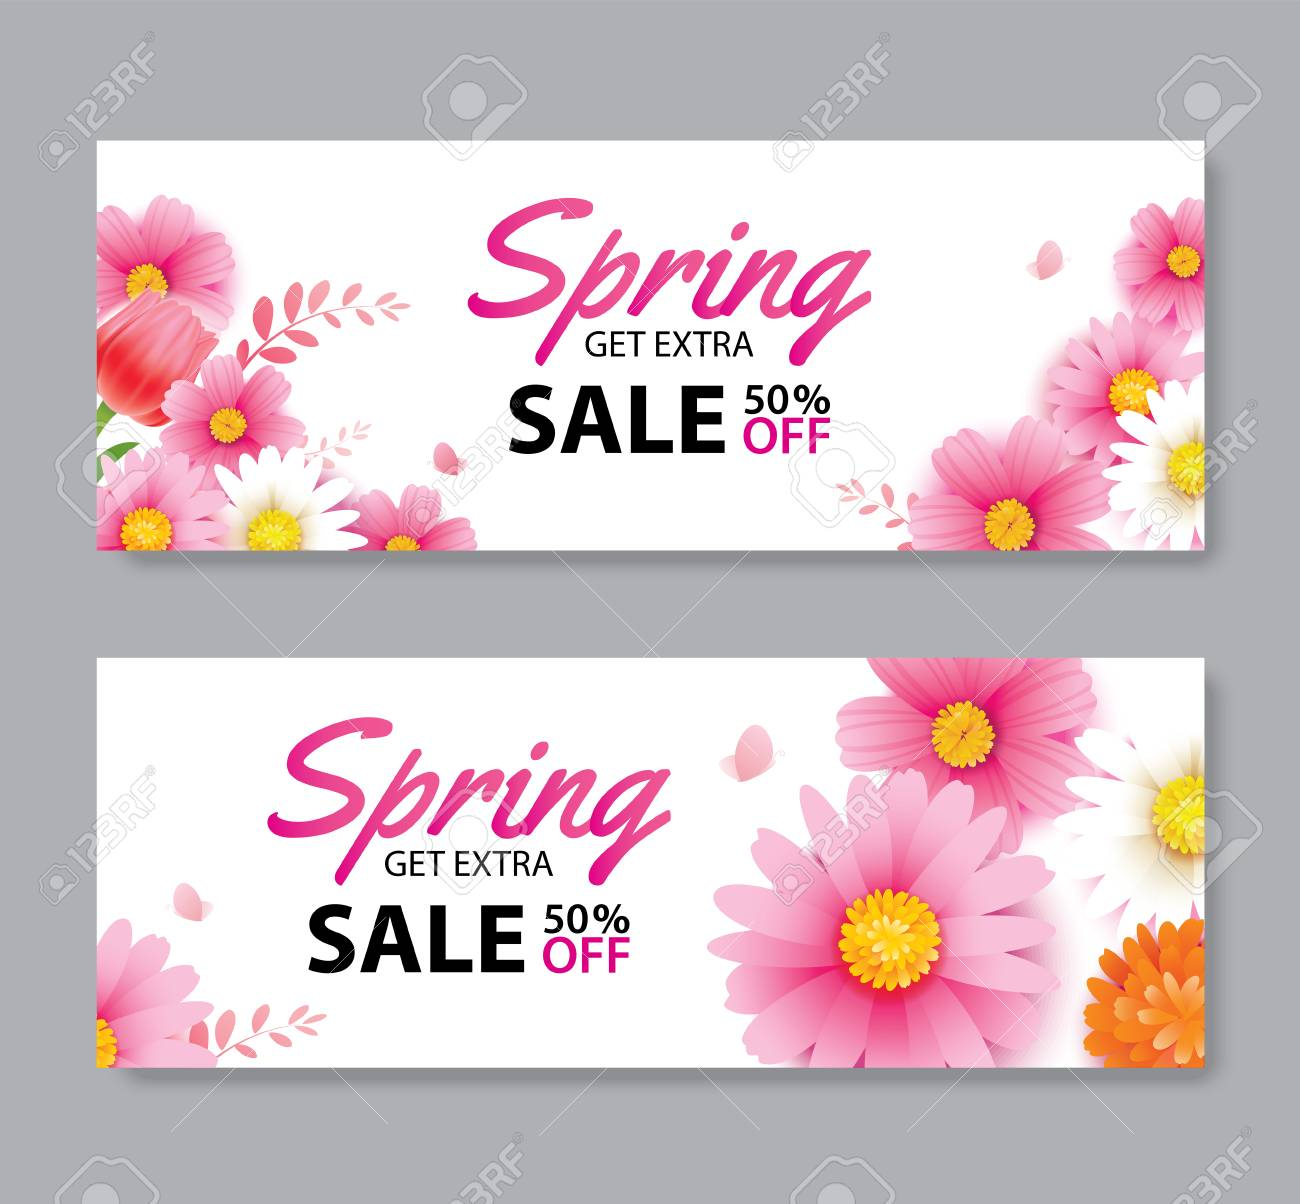 Spring sale voucher banner with blooming flowers background template. Design for advertising, flyers, posters, brochure, invitation, cover discount. - 124814856